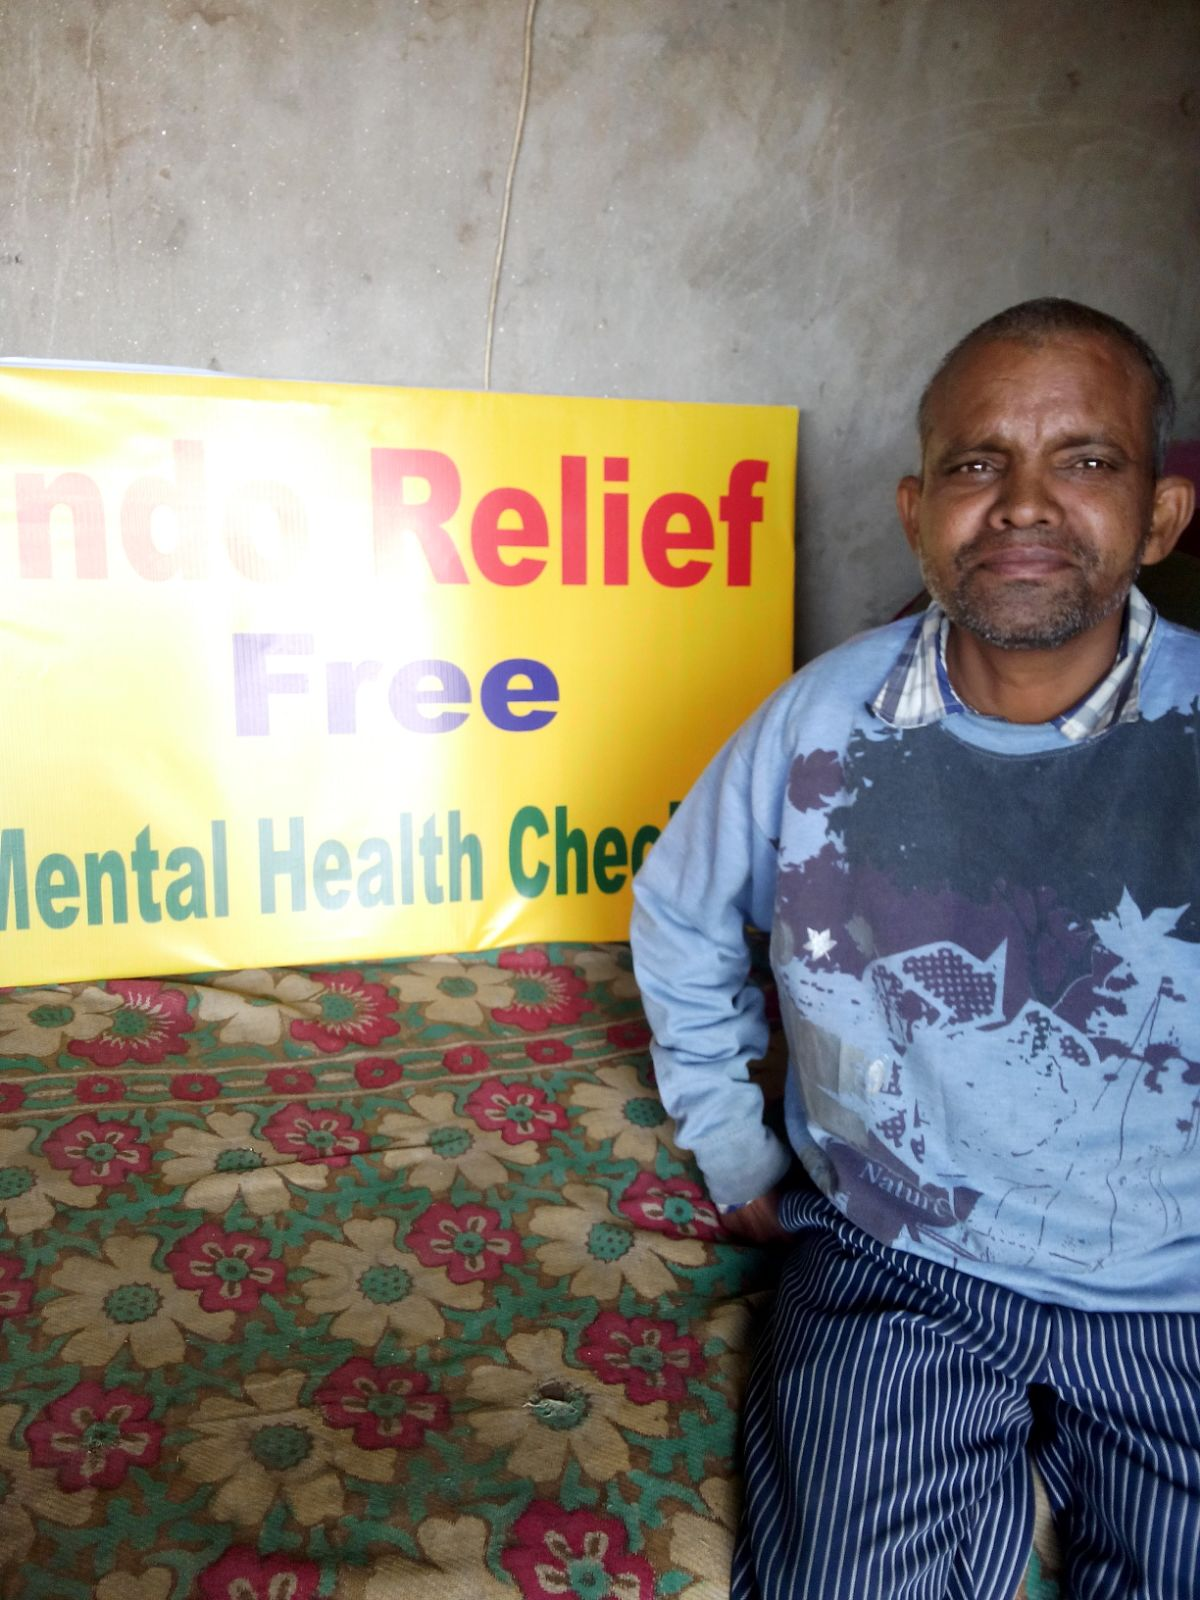 Meet Chitesh, a 48 year old male. He wants to learn more about mental illness. He says his wife often cries, and he is worried about her.